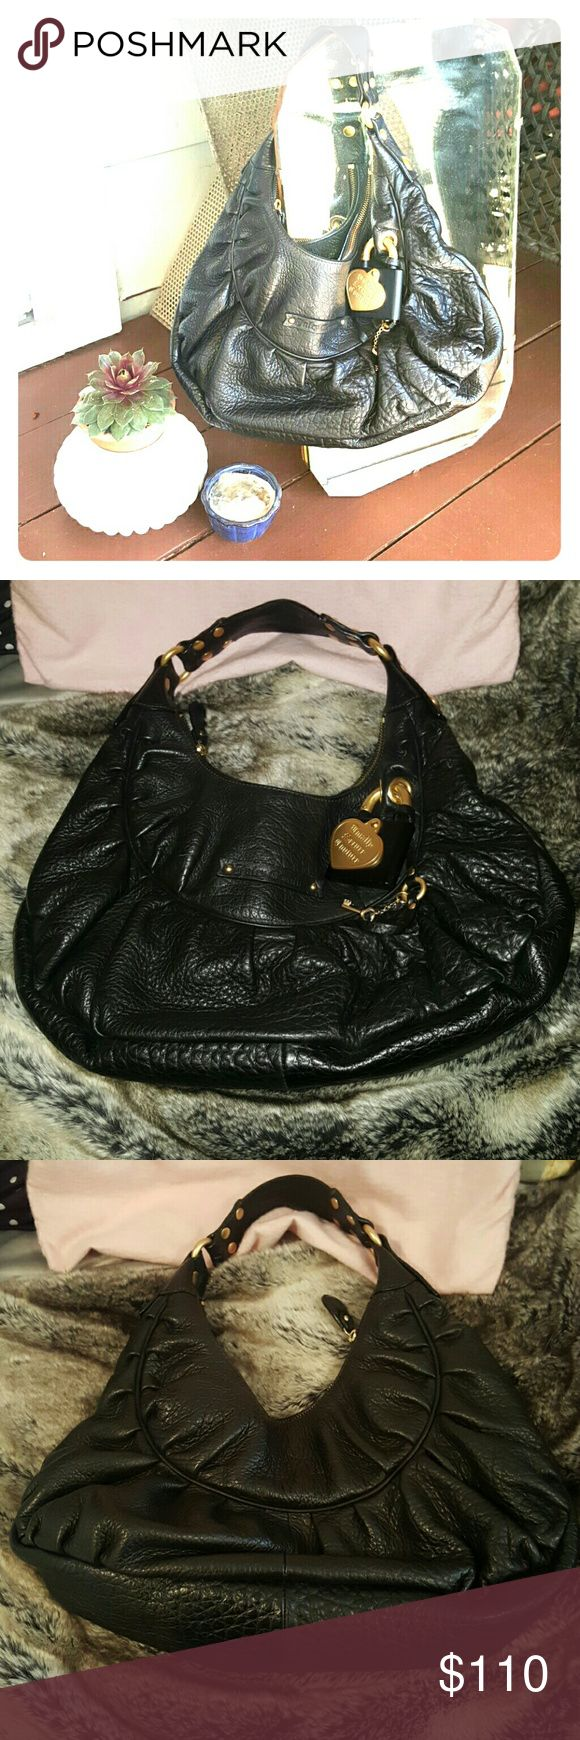 Authentic Juicy Couture Black Leather Purse Beautiful authentic juicy couture leather black purse with gold hardware and adorable lock and key accessory on front. Barely used, in excellent condition.  Comes with original pink dust bag. Juicy Couture Bags Hobos